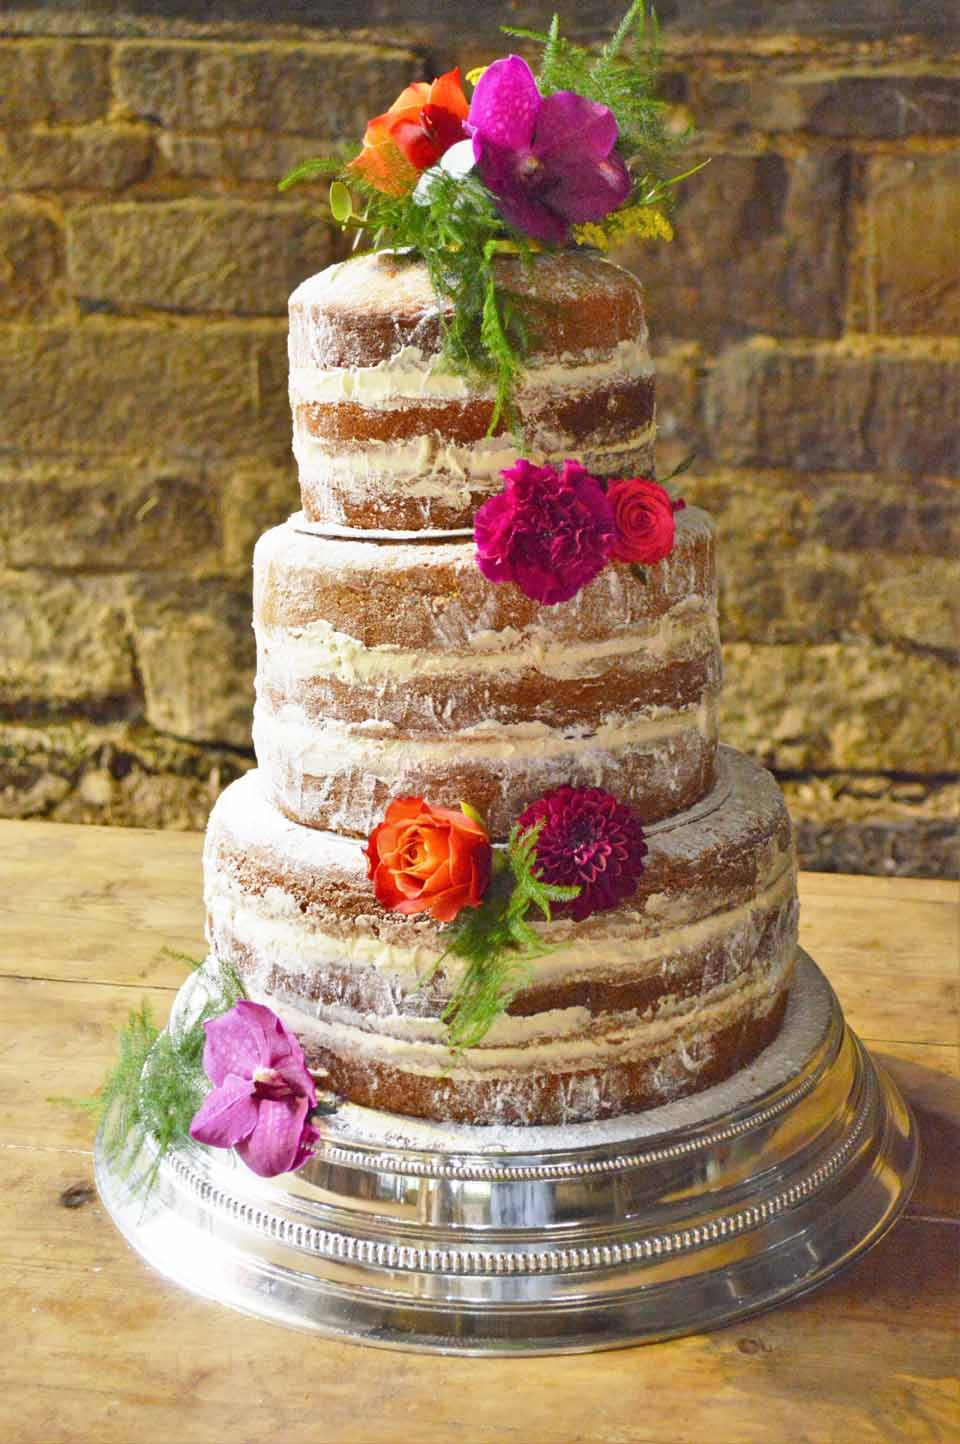 naked cake sussex orchids dahlias roses and fern